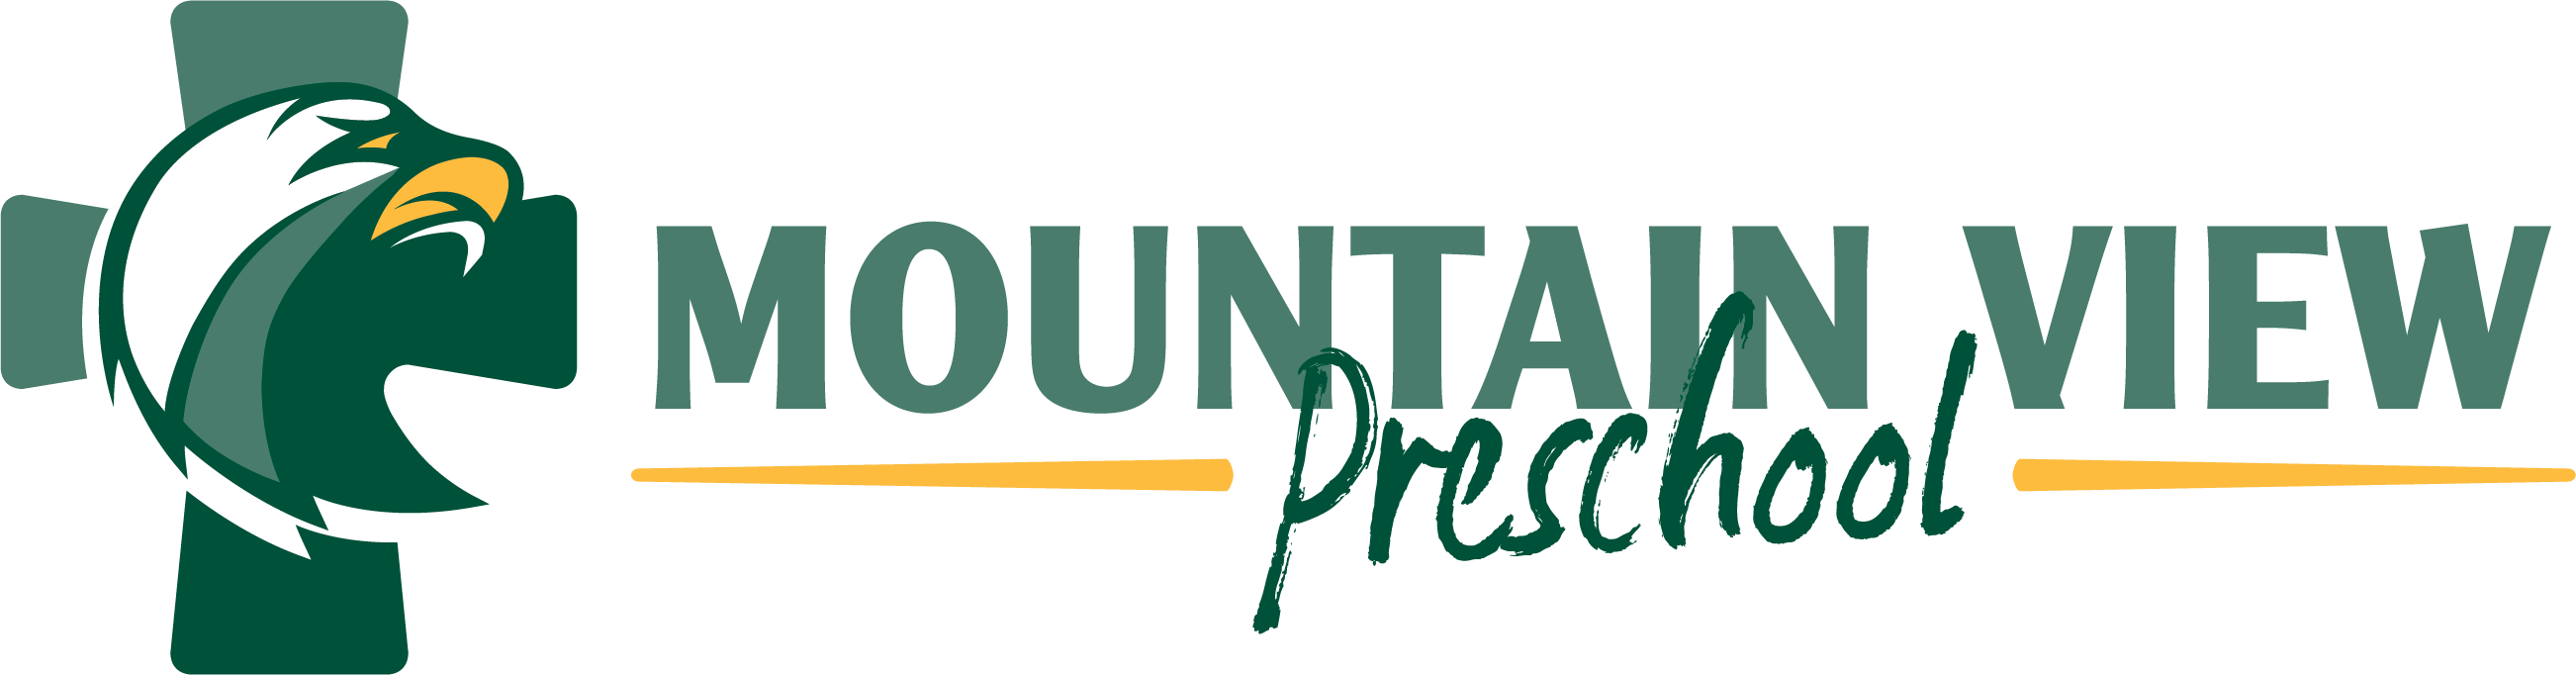 Mountain View Preschool Logo